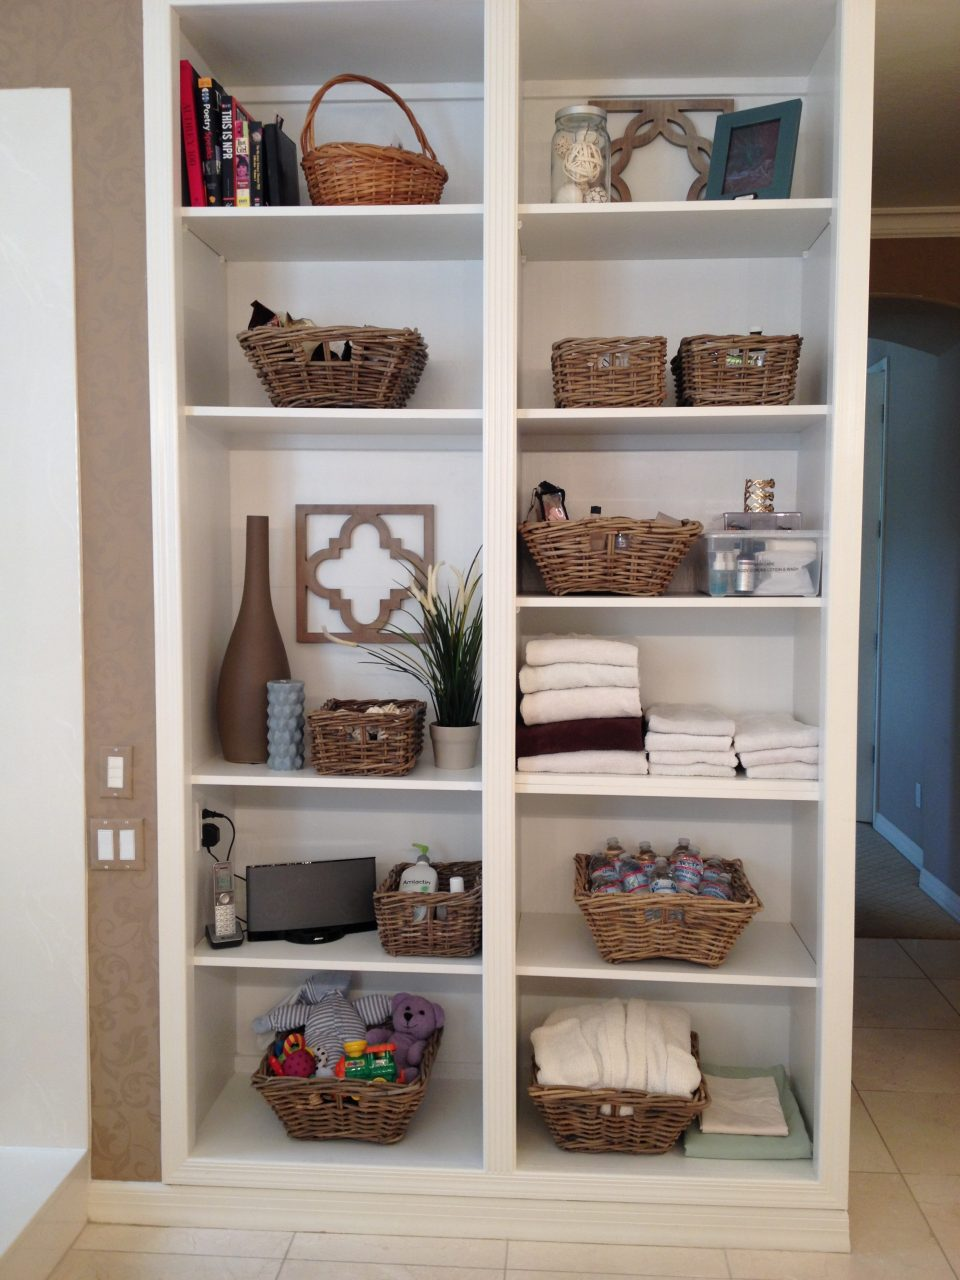 Furniture Charming Storage Shelves With Rattan Baskets For Organize